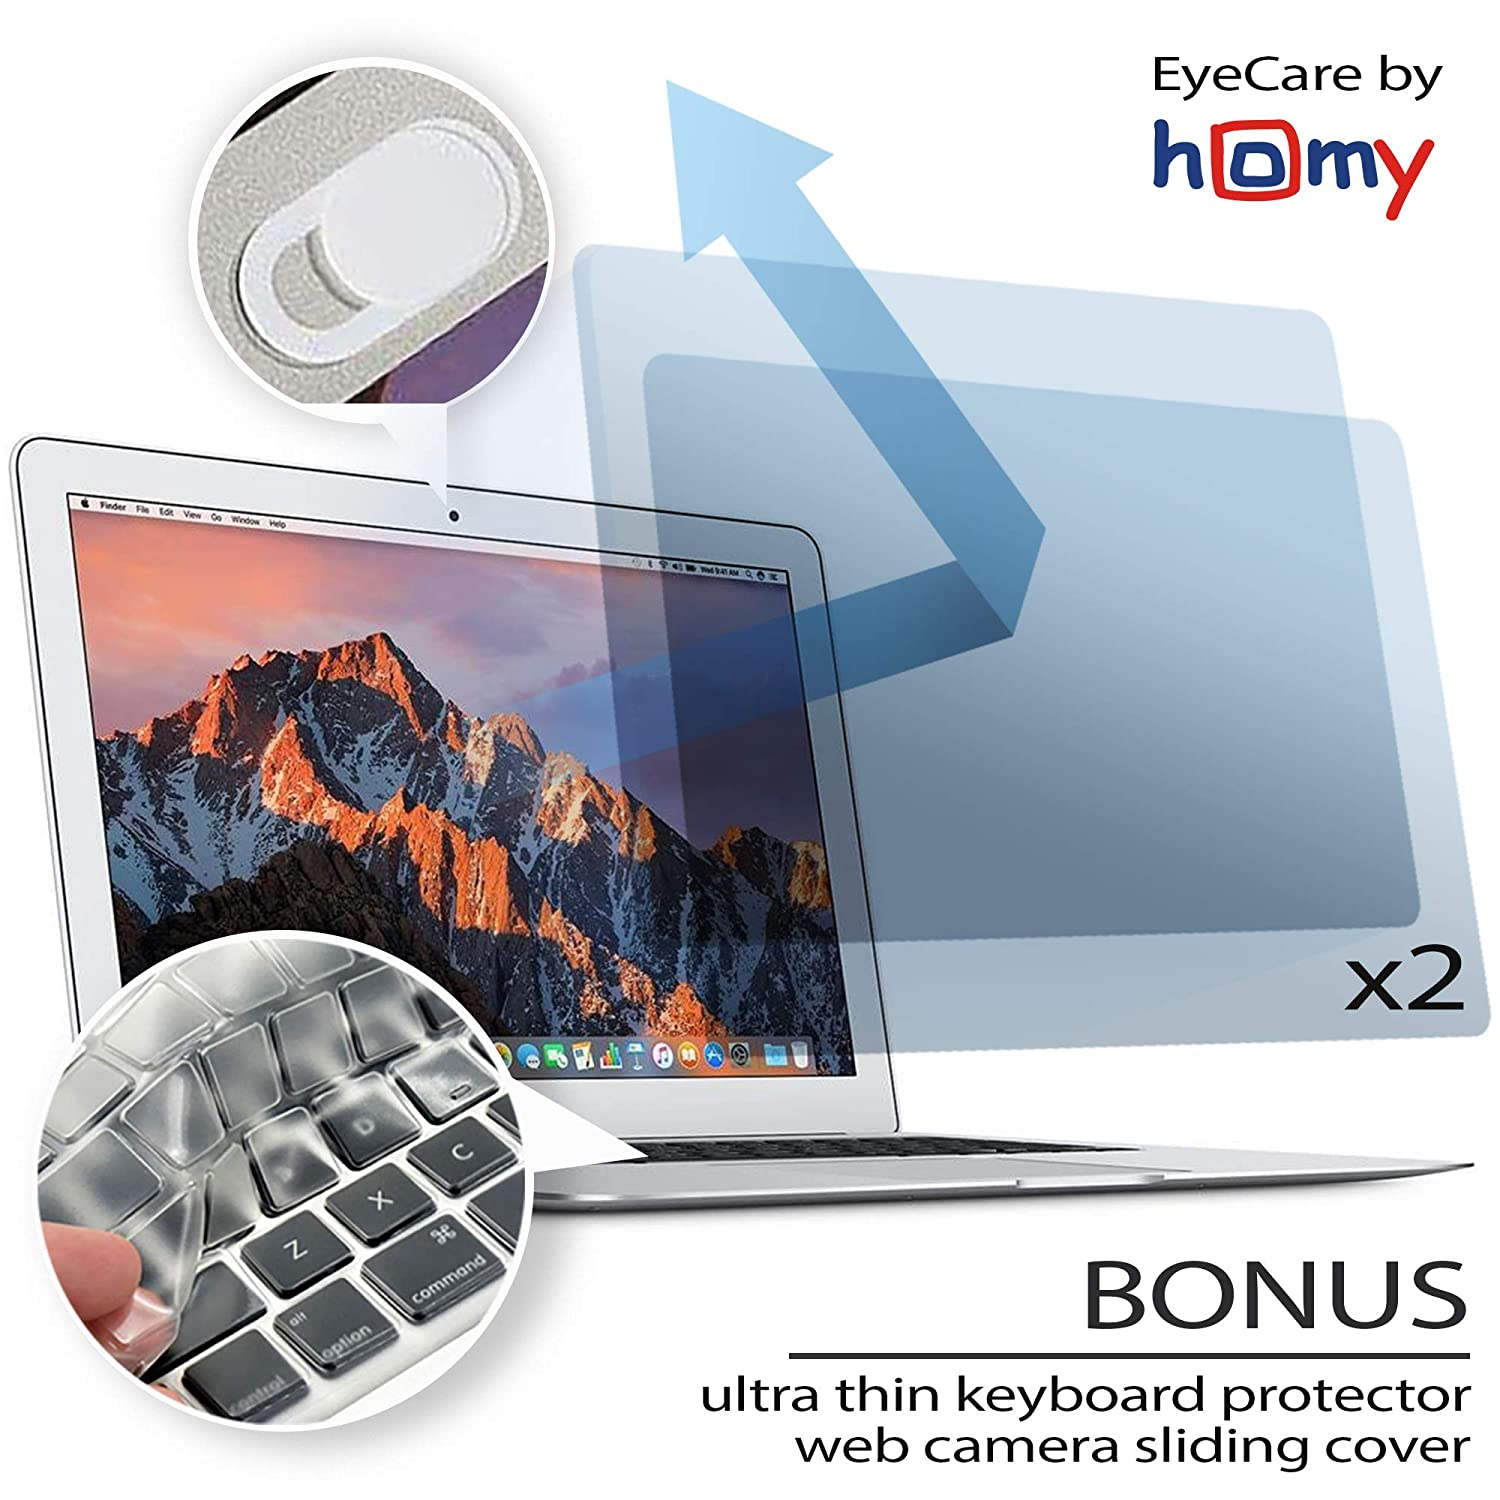 Homy Anti Blue Light Screen Protector Kit [2-Pack] for MacBook Air 13 inch Retina 2017 or Earlier + Keyboard Cover Ultra-Thin TPU + Web Camera Sliding Cover. Eye Protection for A1369 A1466 Models ONLY